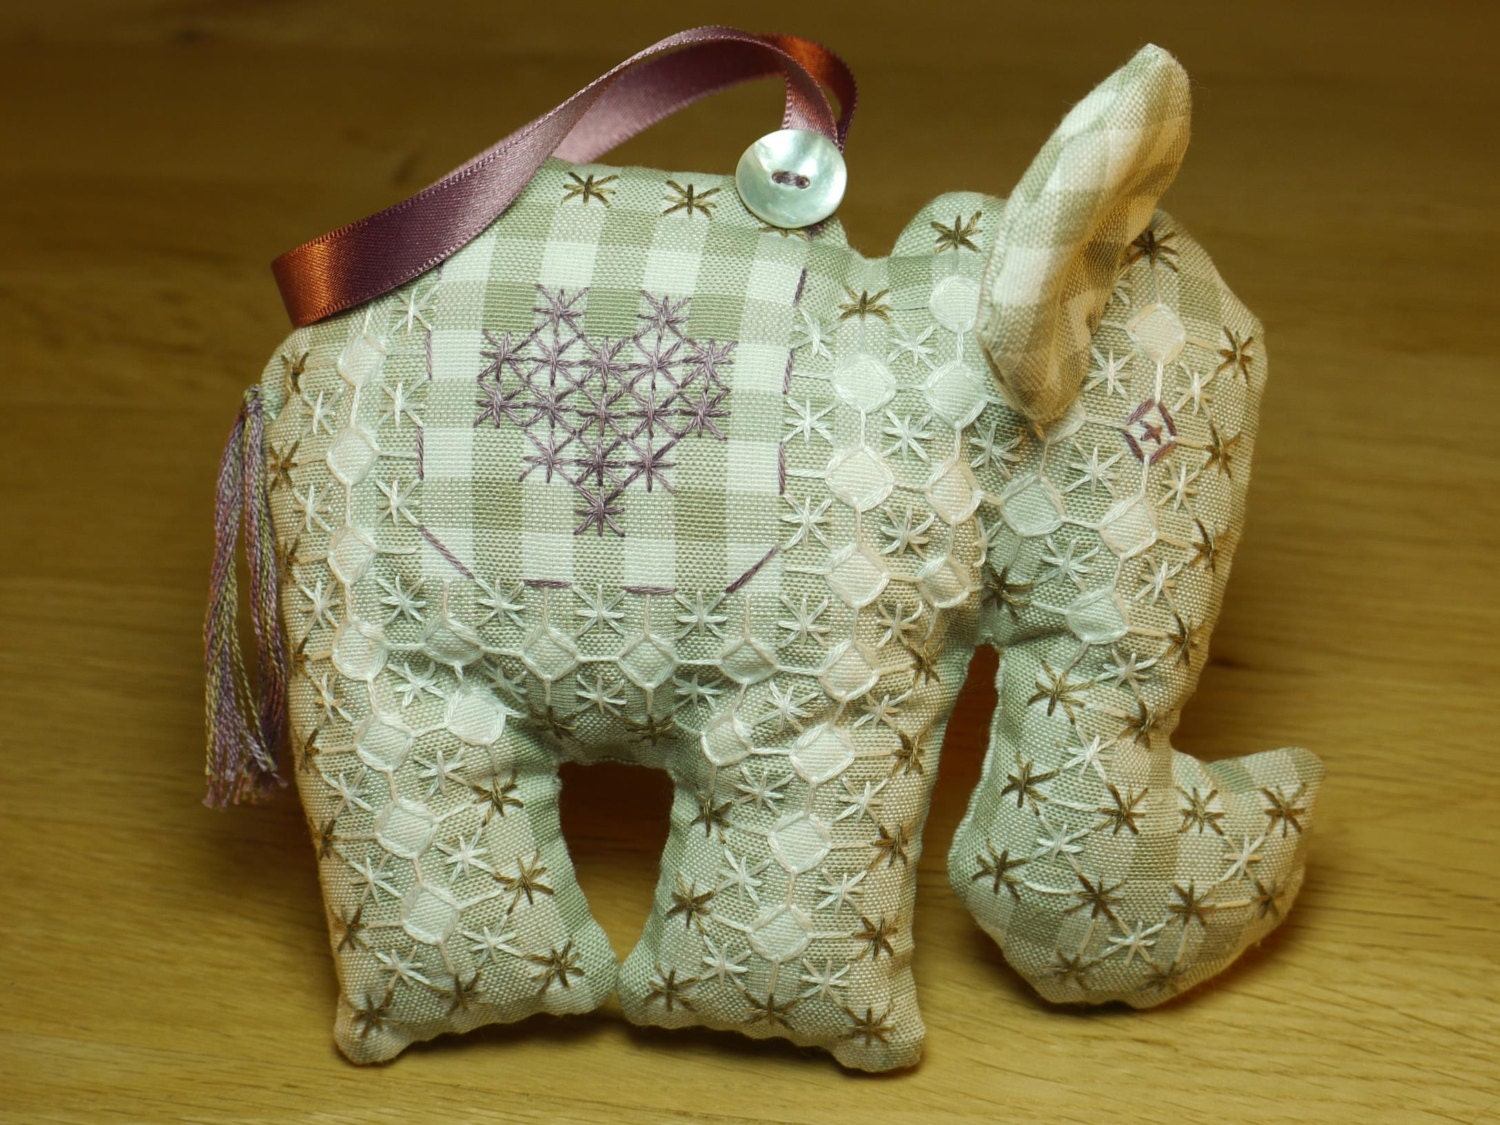 Homemade Baby Gifts Uk : Baby elephant sewing kit homemade personalised gift or